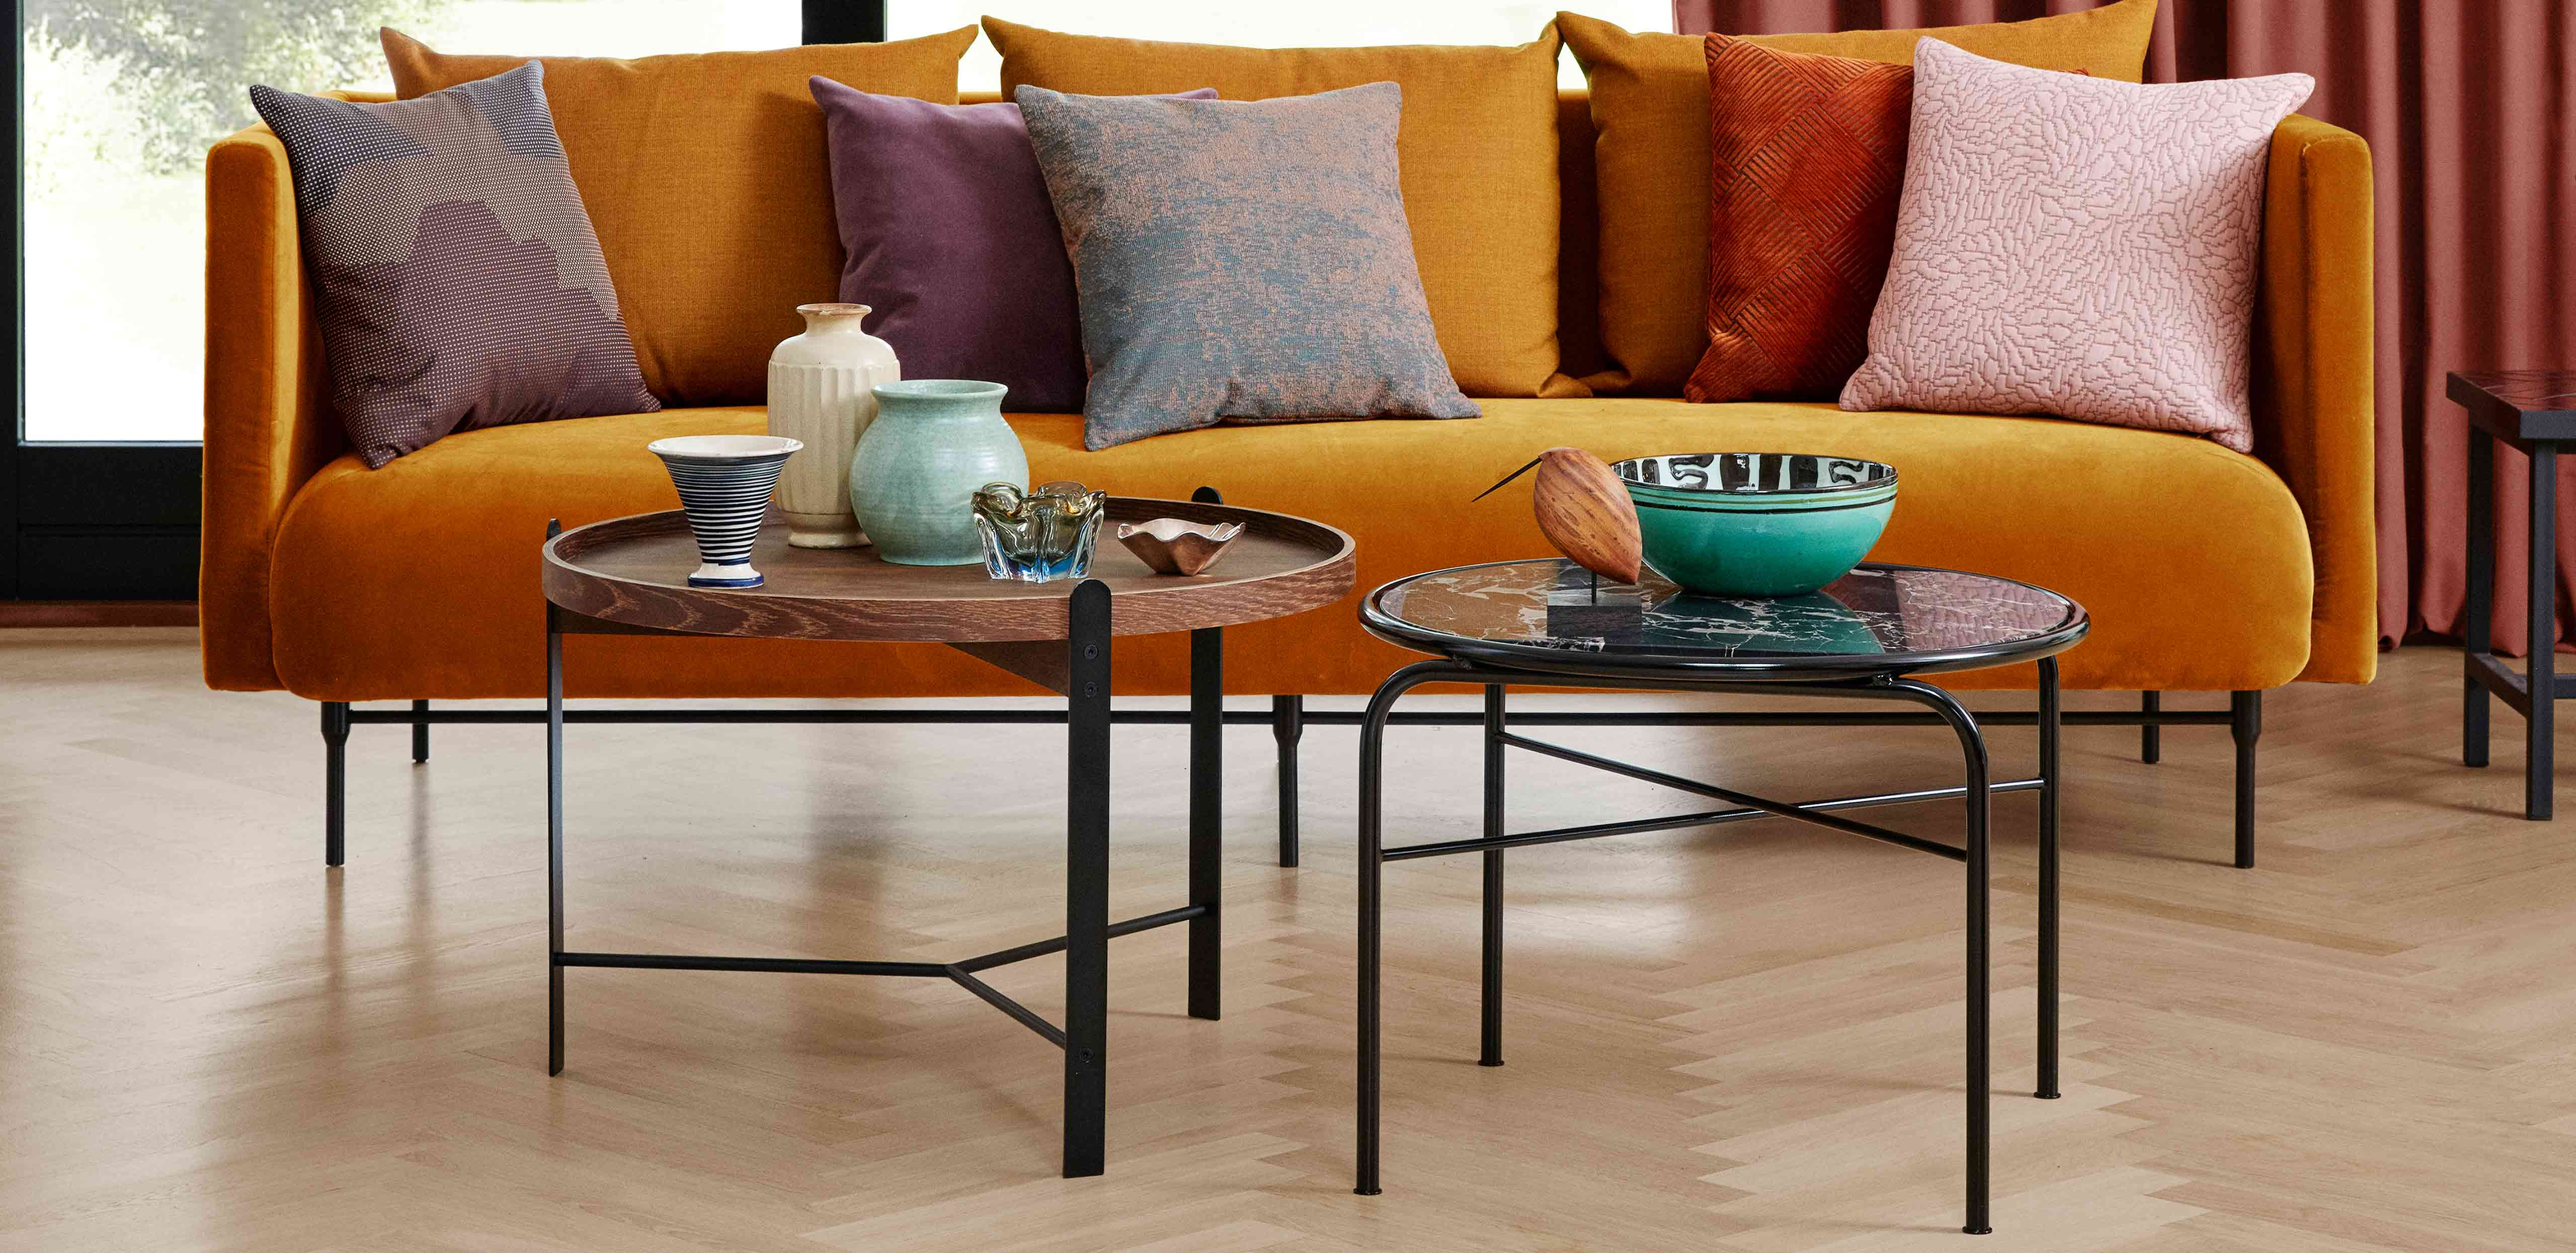 Compose coffee tables in a stylish livingroom with the Galore sofa.